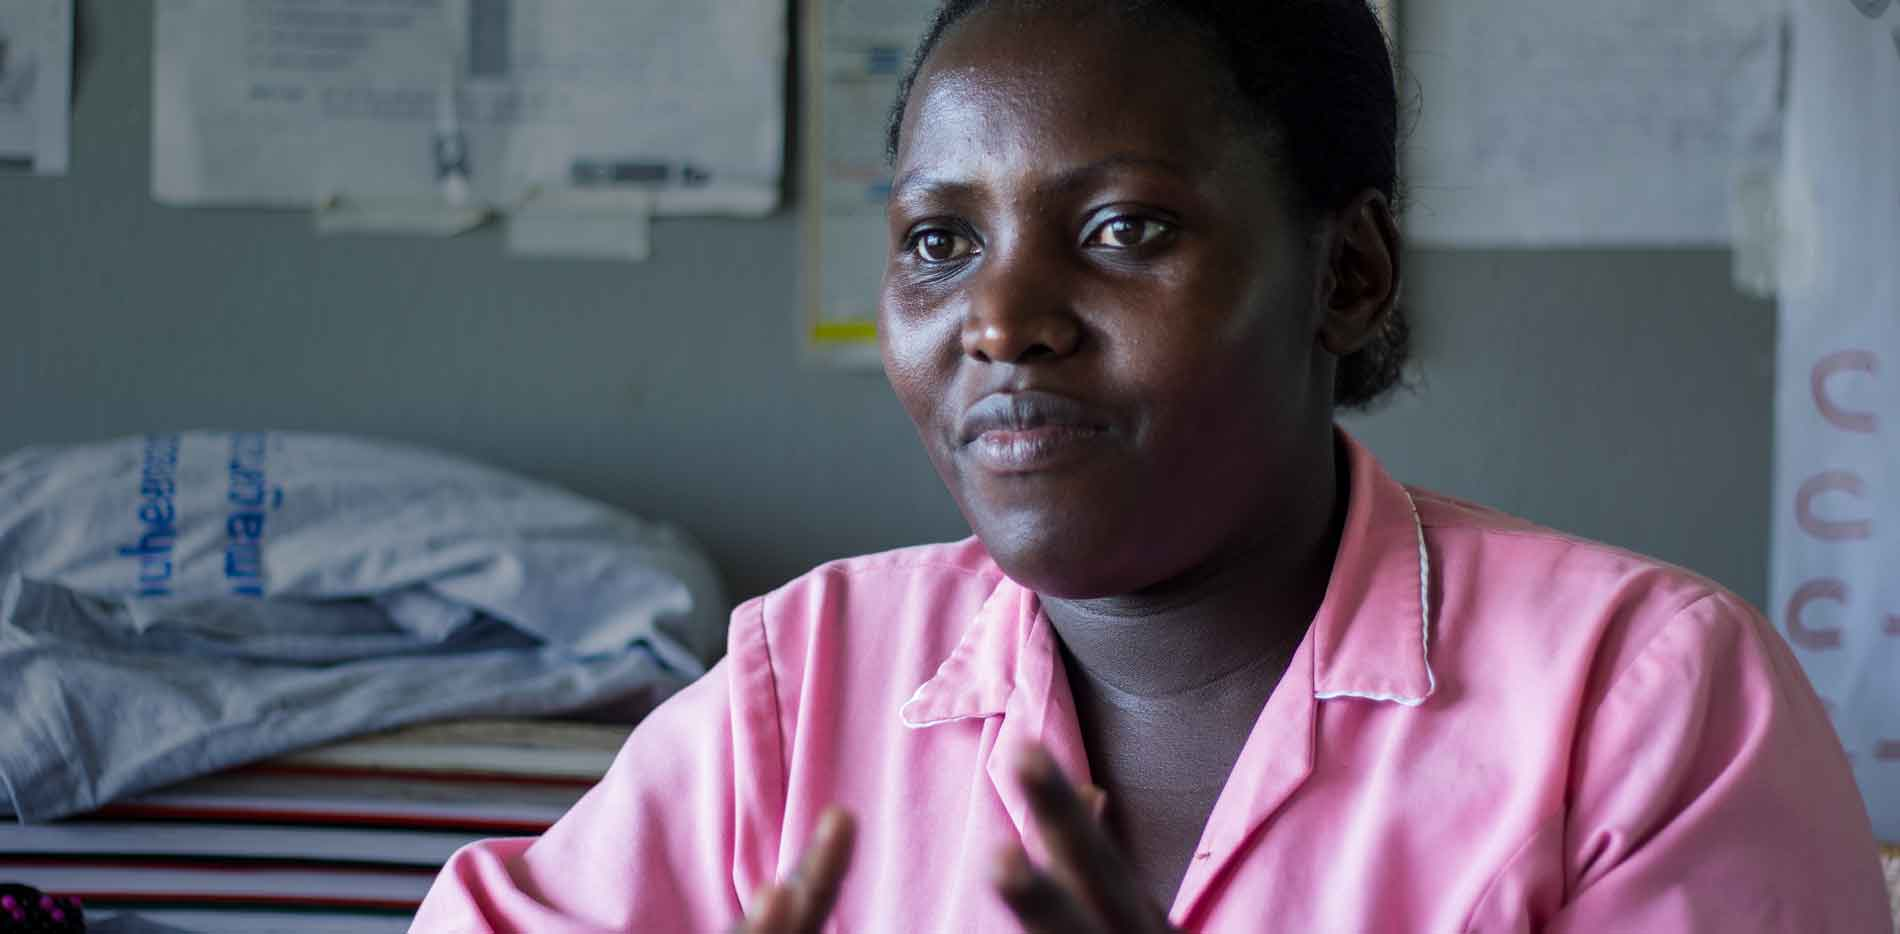 Monic Babirye, a midwife at Kikowa Health Center in Uganda